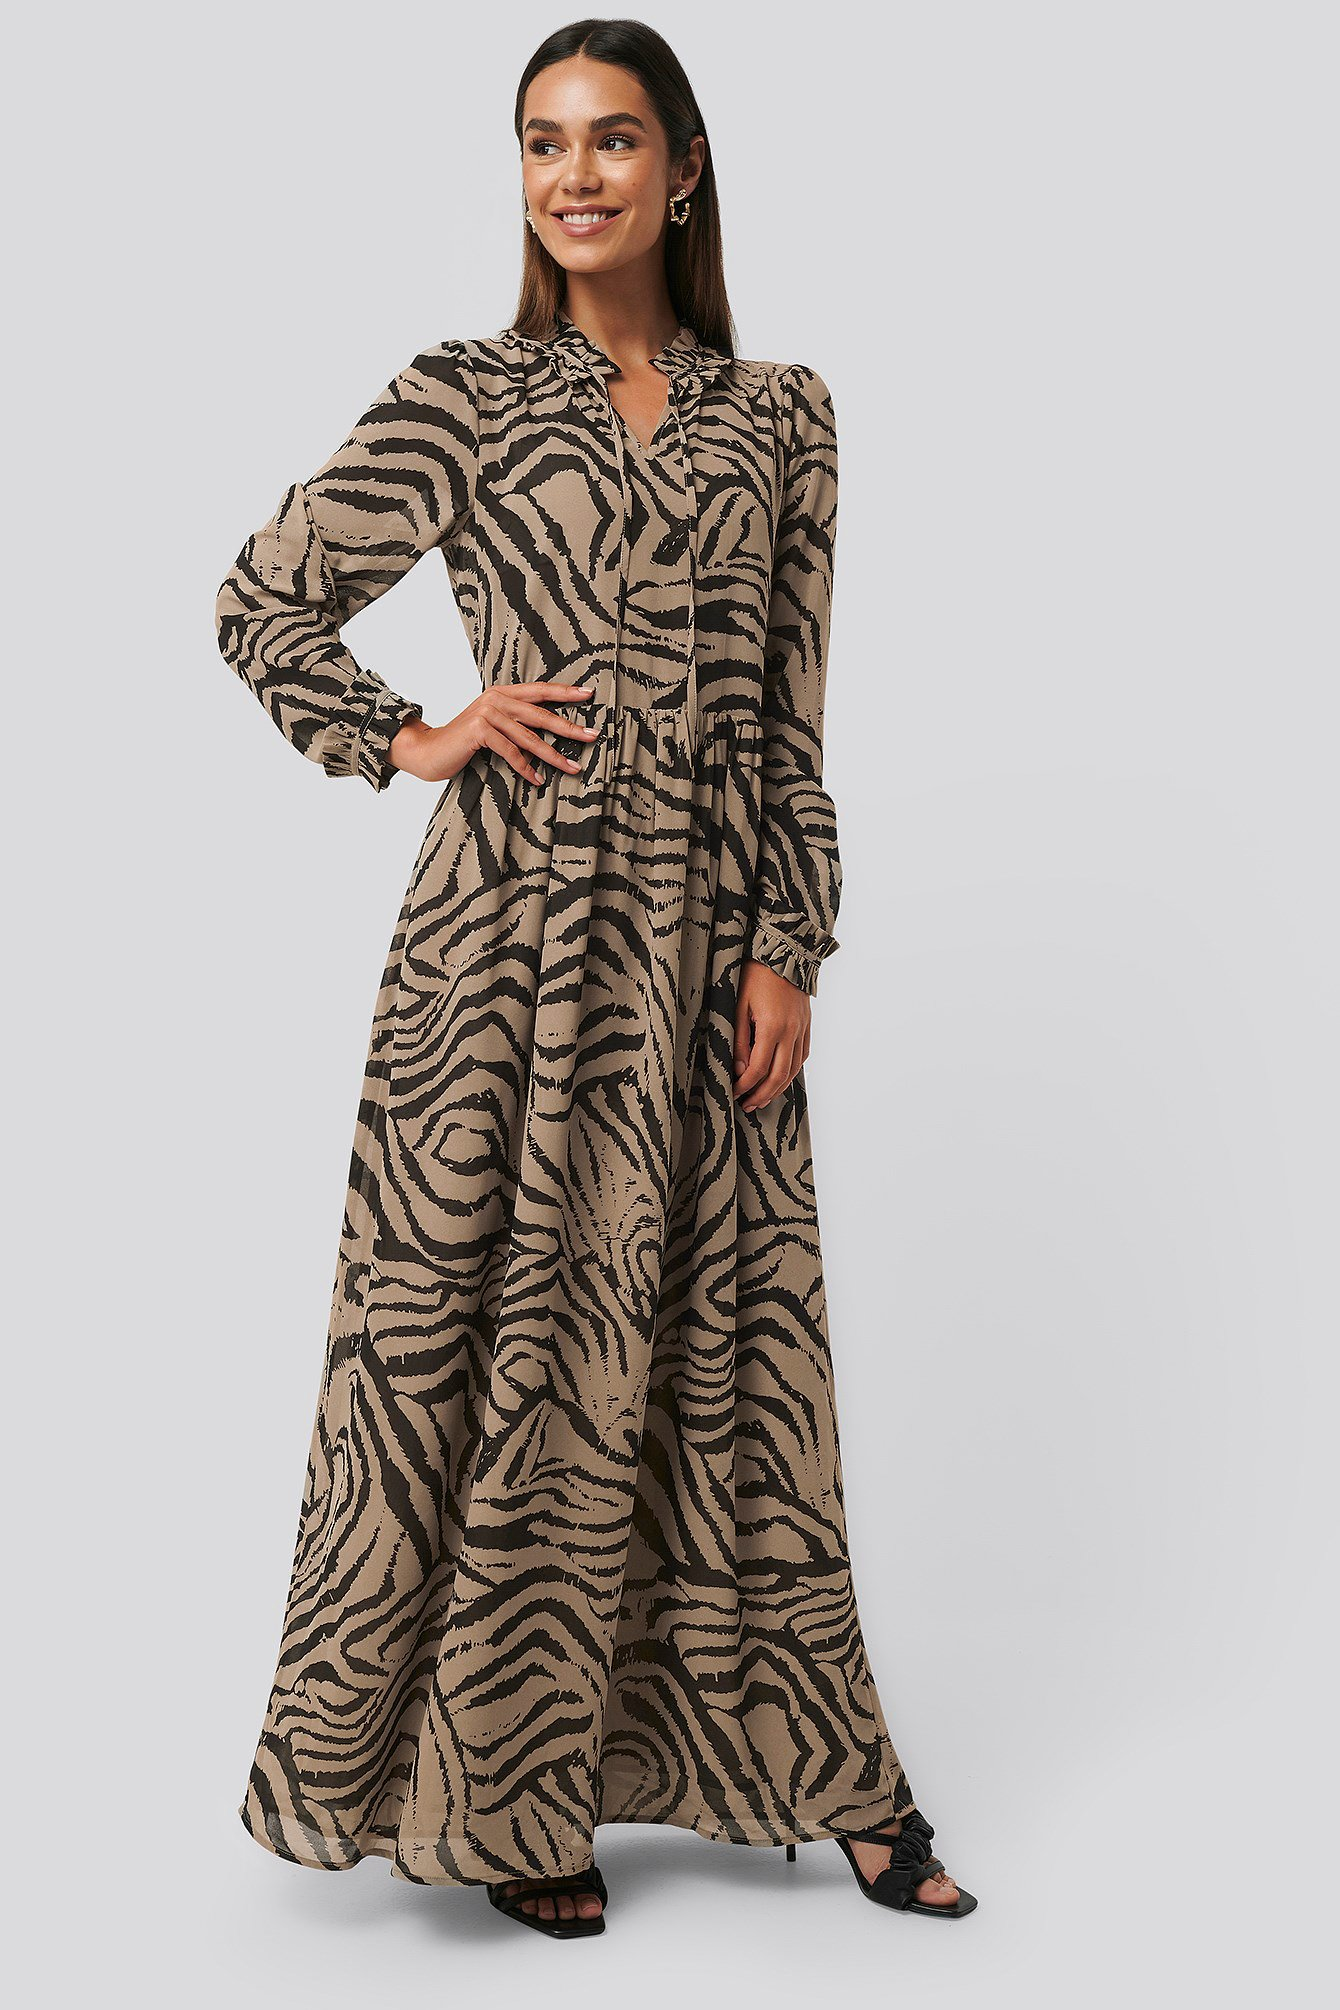 Zebra Maxi Frill Sheer Dress